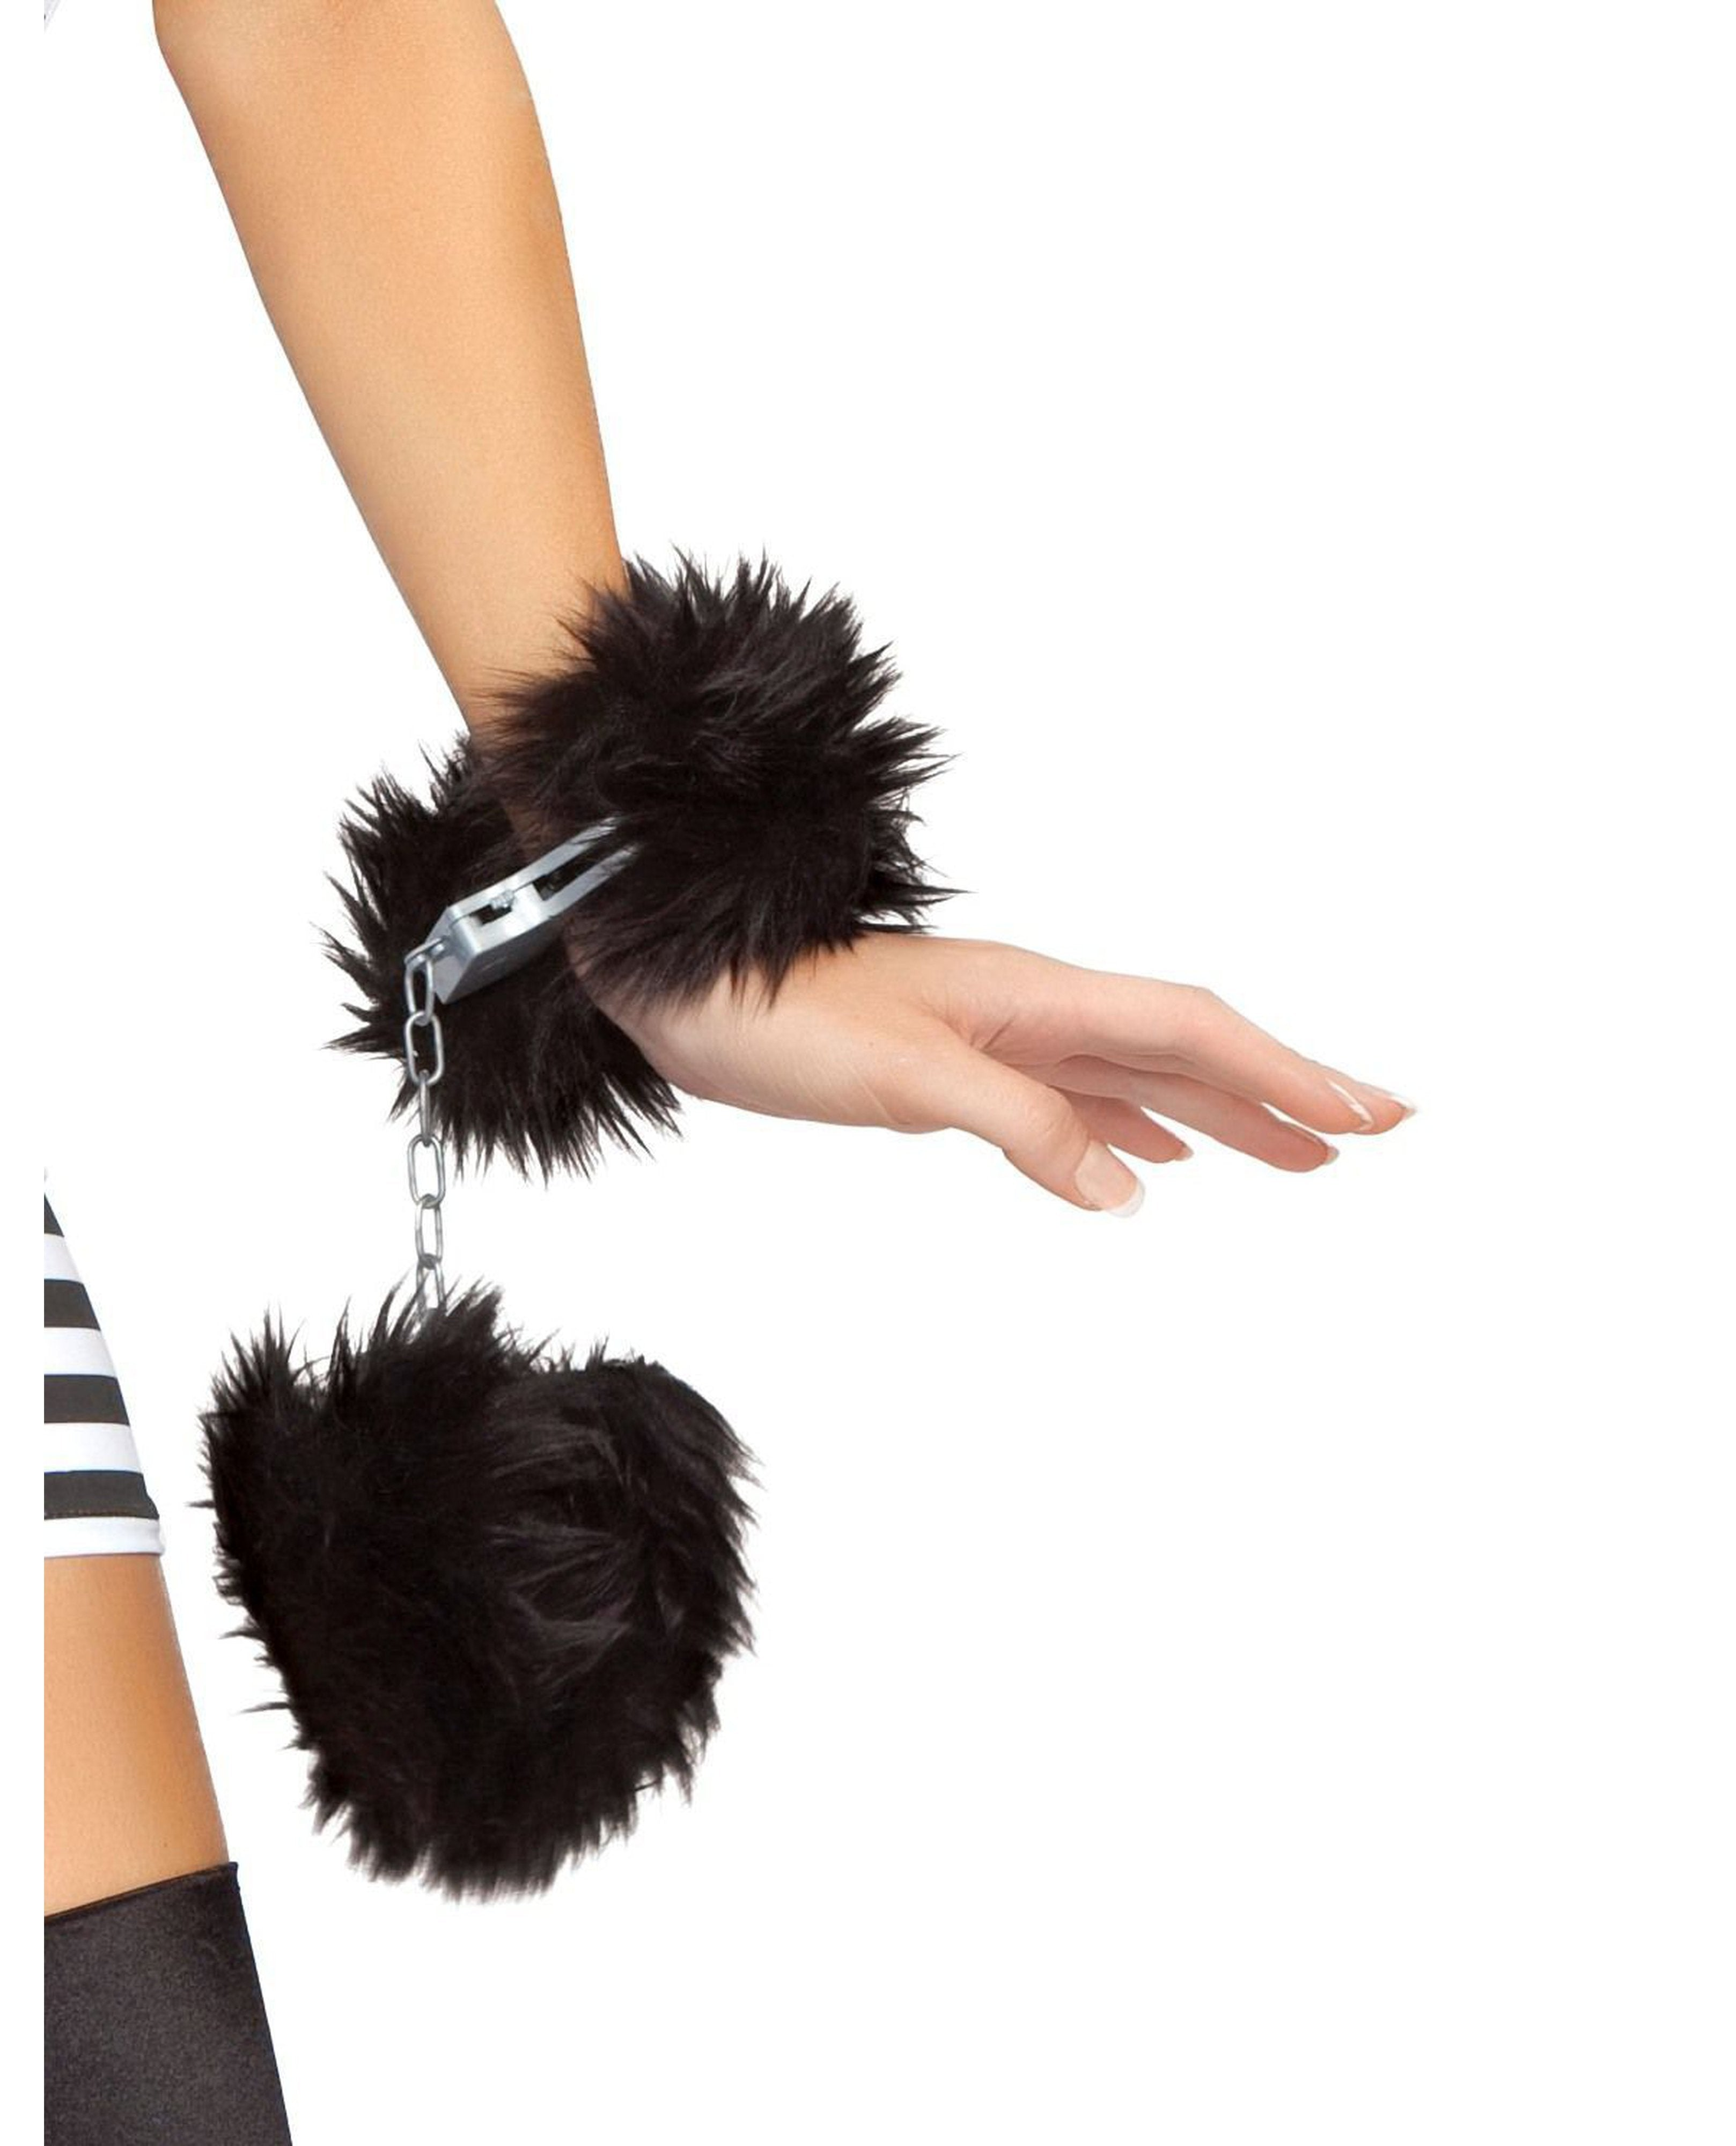 Fur Trimmed Handcuffs-costumes-Roma Costume-O/S-As Shown-Nakees